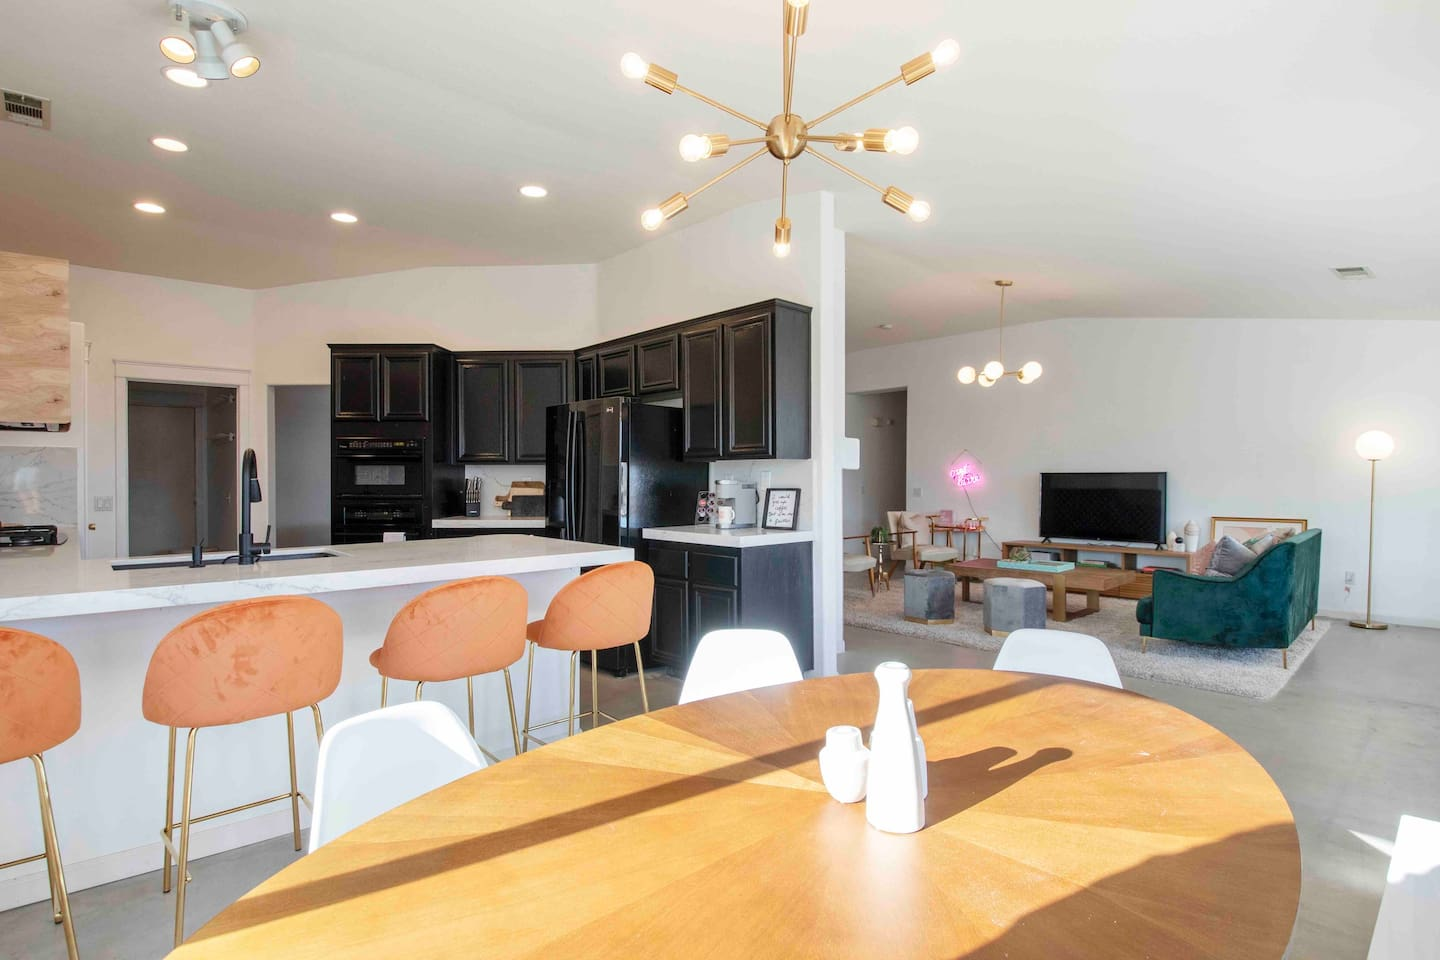 The Dining Room has a breakfast bar that seats 4 plus the dining table provide seats for 8 people. It is open to the living area and has easy access to outdoor dining by the pool. A complete view of the pool right from this dining area.